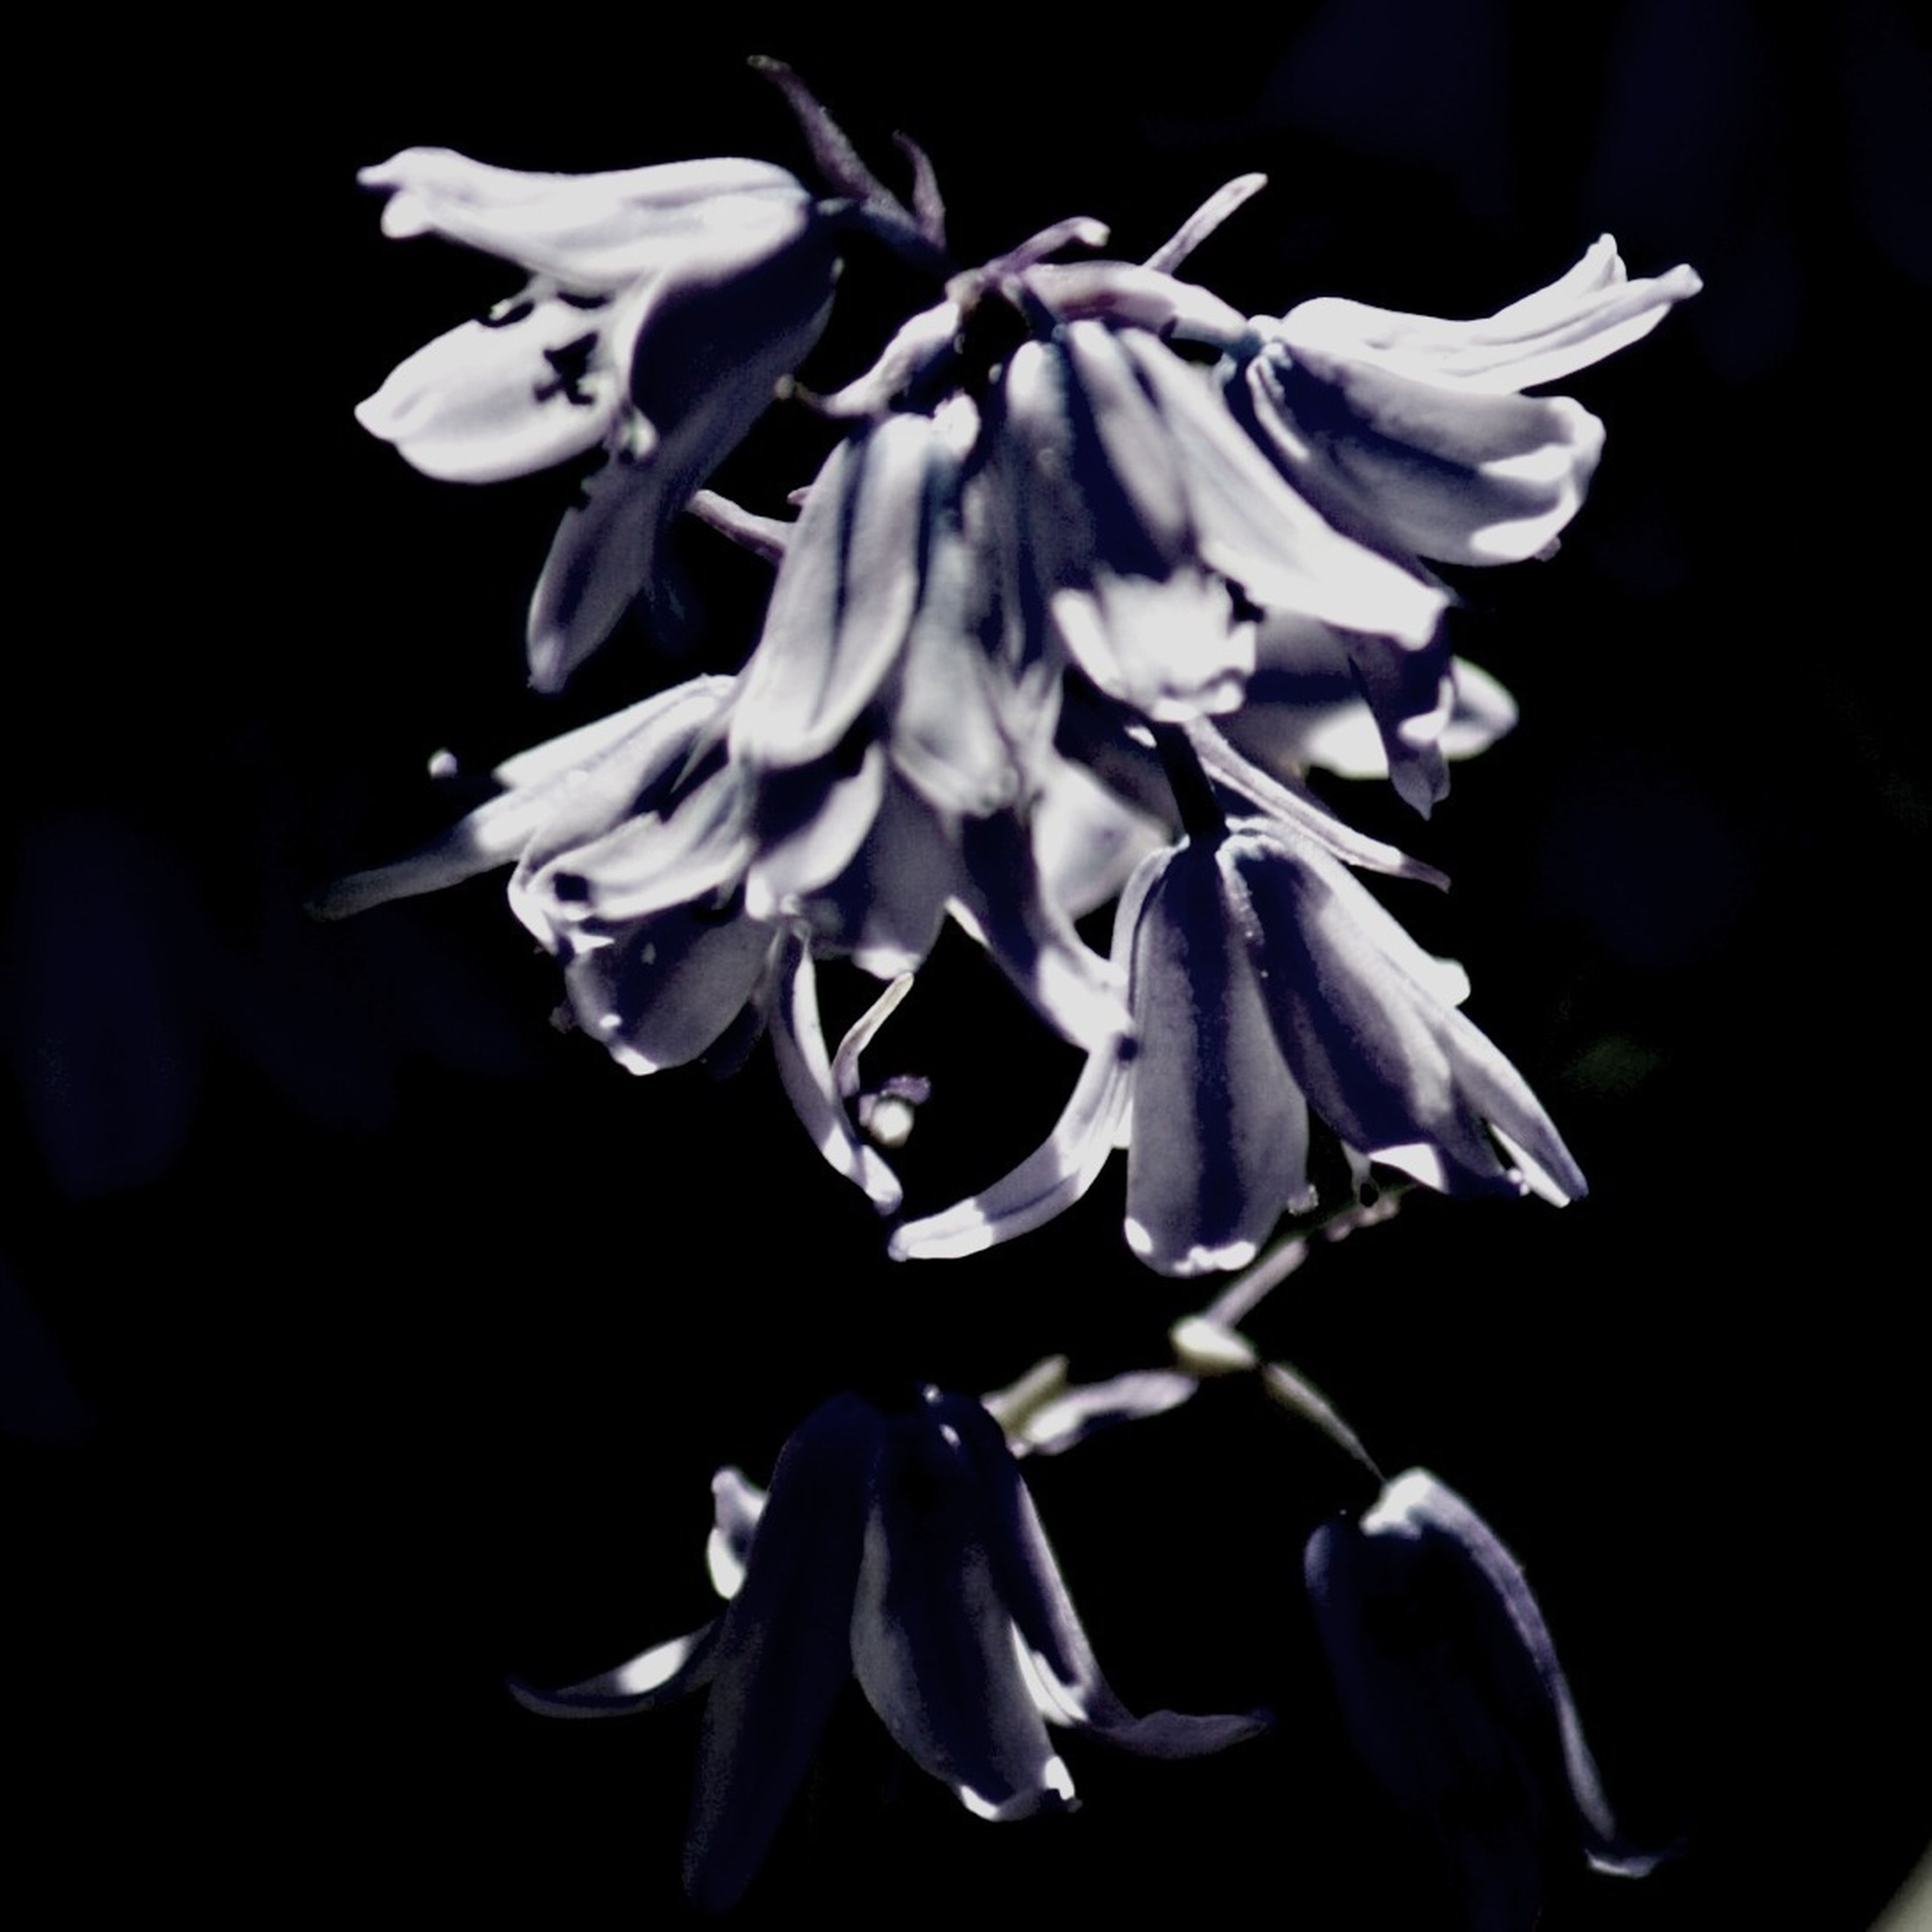 flower, petal, freshness, fragility, flower head, beauty in nature, growth, close-up, nature, black background, blooming, plant, studio shot, focus on foreground, in bloom, night, blossom, no people, selective focus, pollen